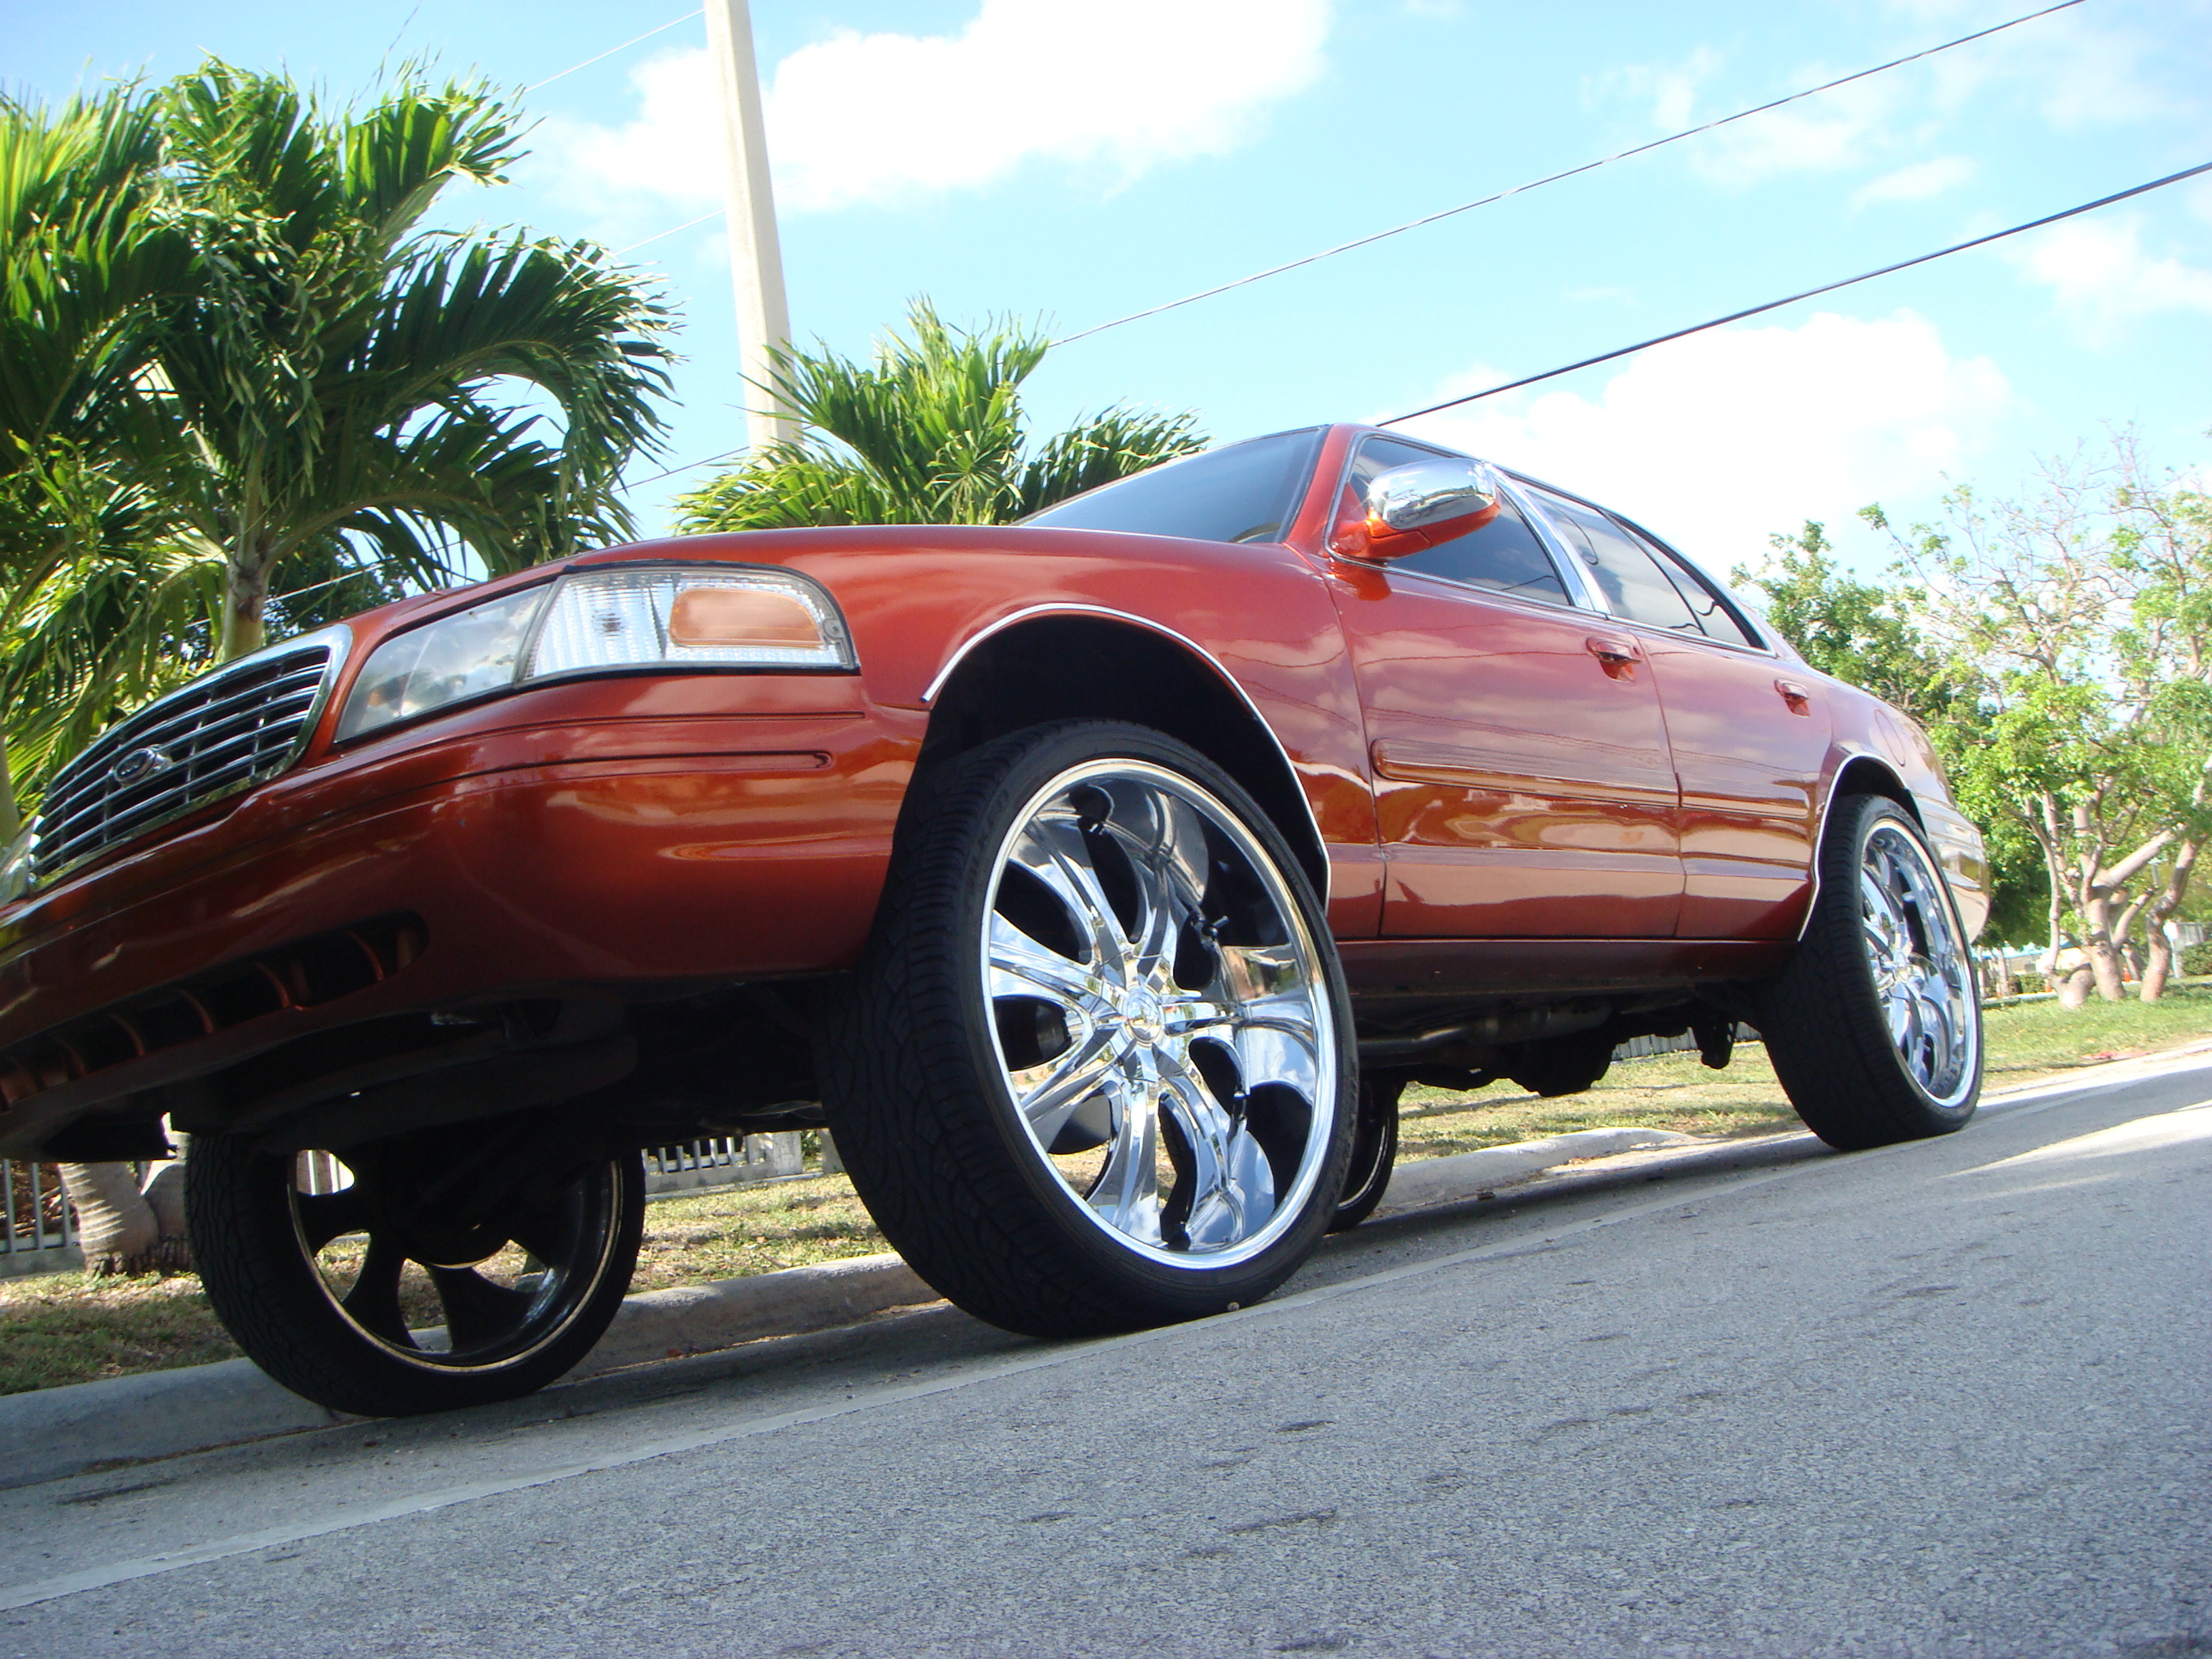 CandyStunneR's 2002 Ford Crown Victoria